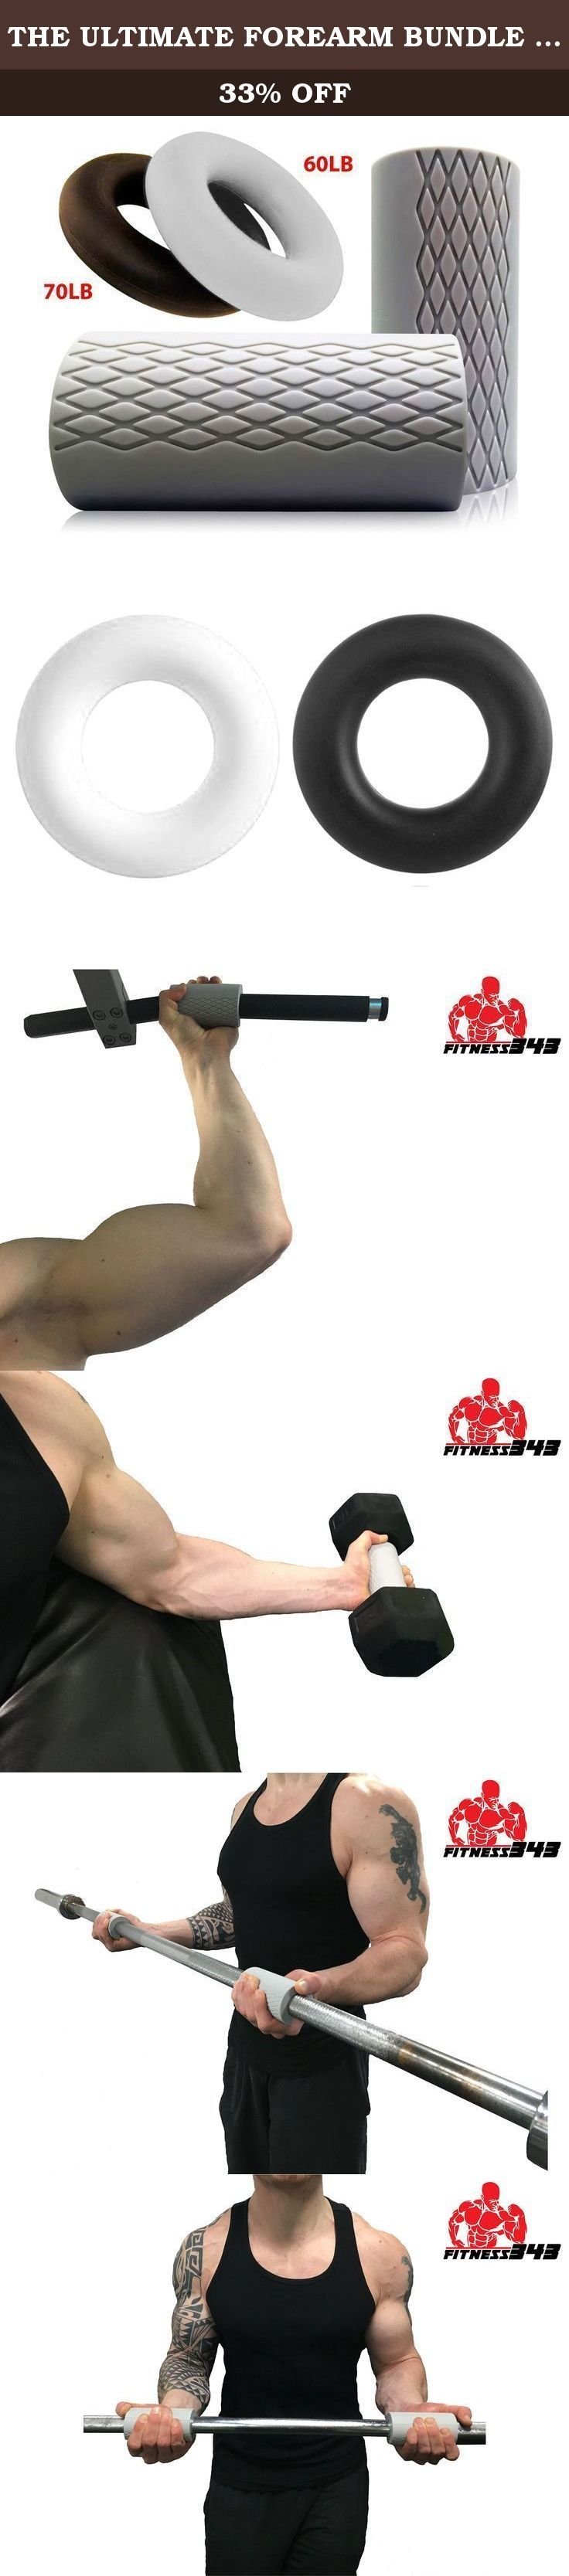 """THE ULTIMATE FOREARM BUNDLE - 2"""" Thick Fat Grips + 2 Forearm Grip Rings (60LB & 70LB Resistance) - Made From Comfortable and Durable Non-slip Silicone Rubber - Quality Manufactured - 100% refundable. Use these products together to reach your forearms full potential size and strength. We carefully selected these products to bundle together because they target different key areas of your forearms. These targeted areas are essential for maximum growth and increase in strength. The 60LB…"""